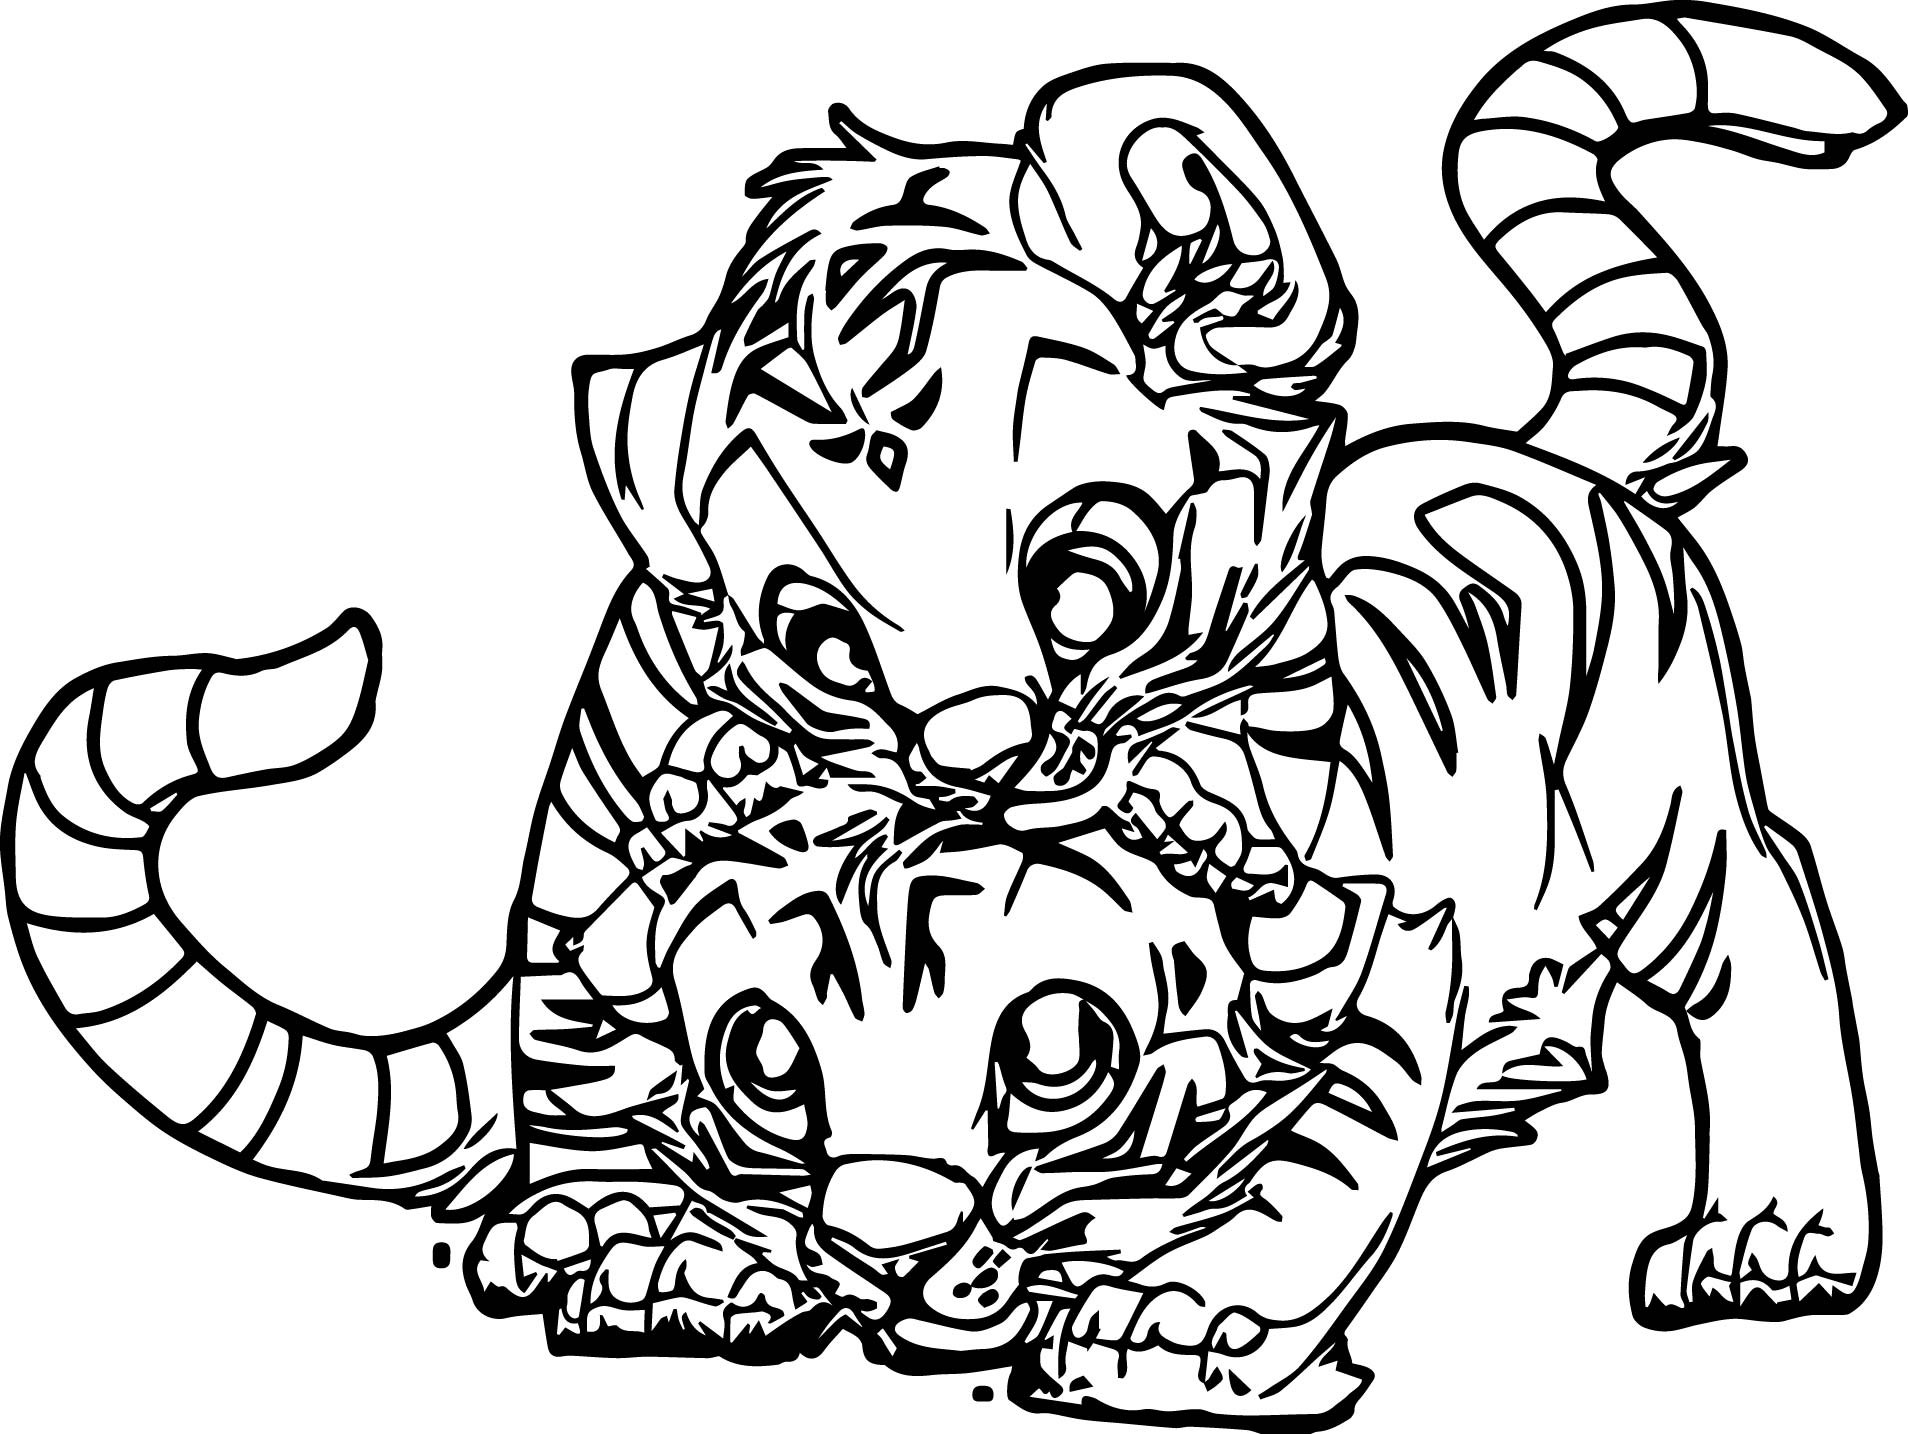 1908x1434 Mizzou Tiger Coloring Page Free Draw To Color